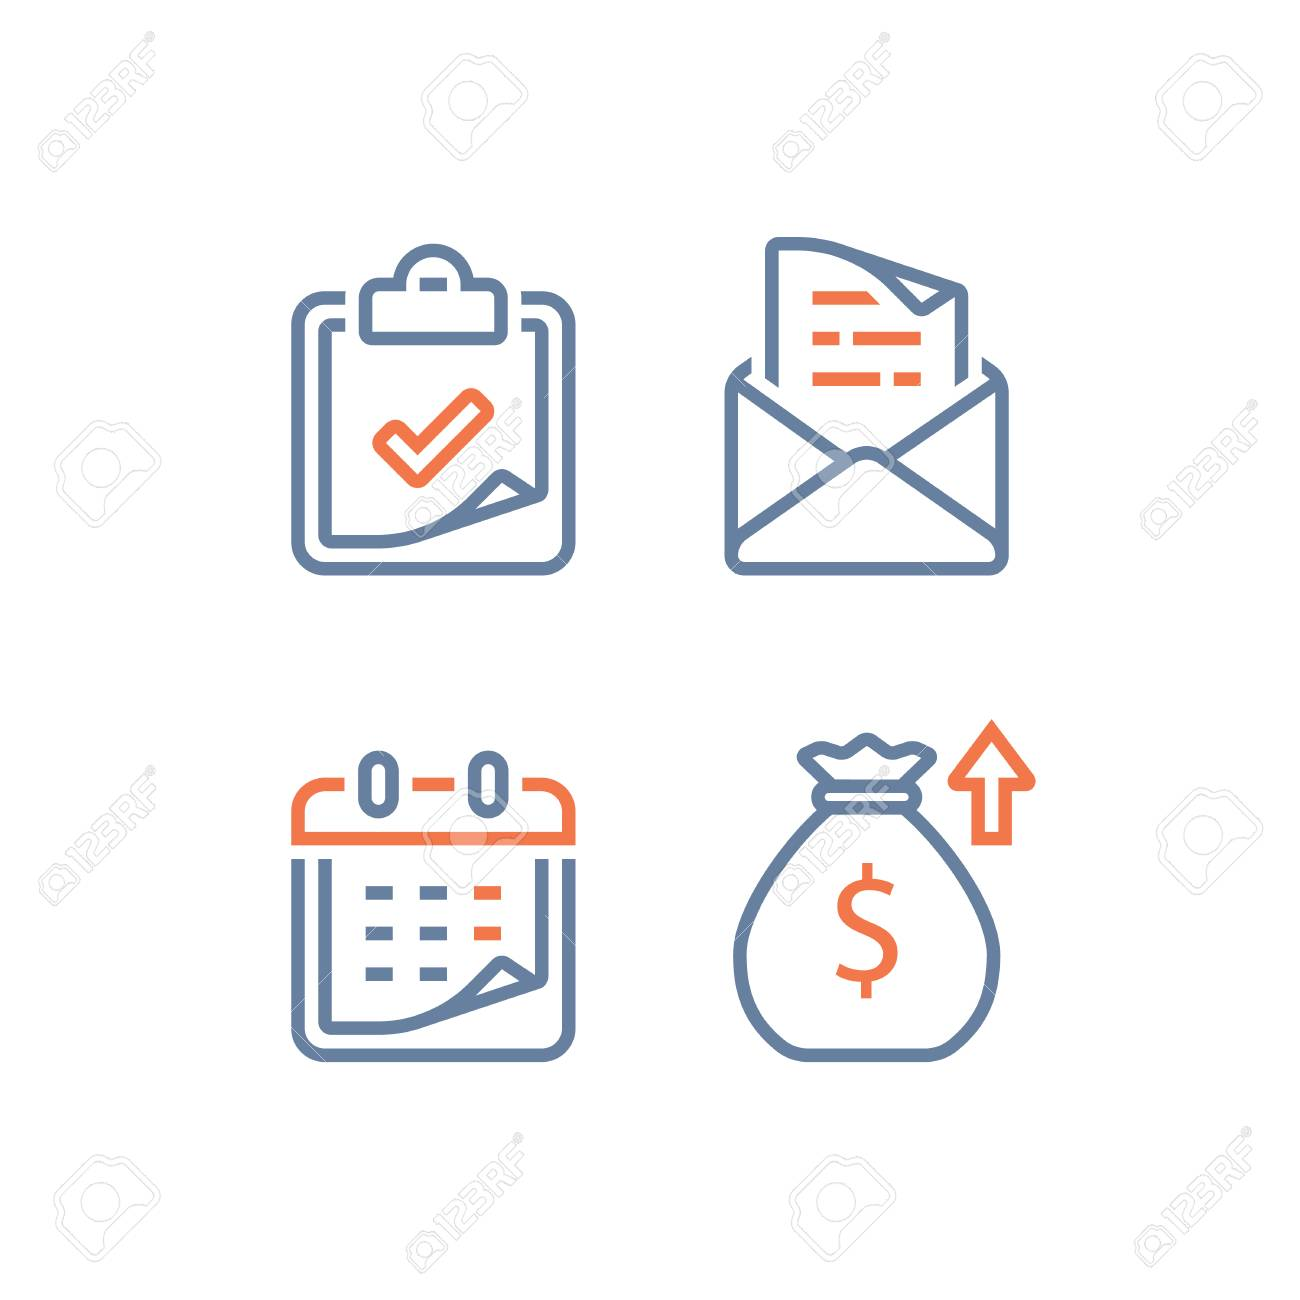 Financial calendar, annual revenue, long term value investment and return, time period, high interest rate, monthly loan payment plan installment, tuition grant application, linear vector, line icon - 108933499